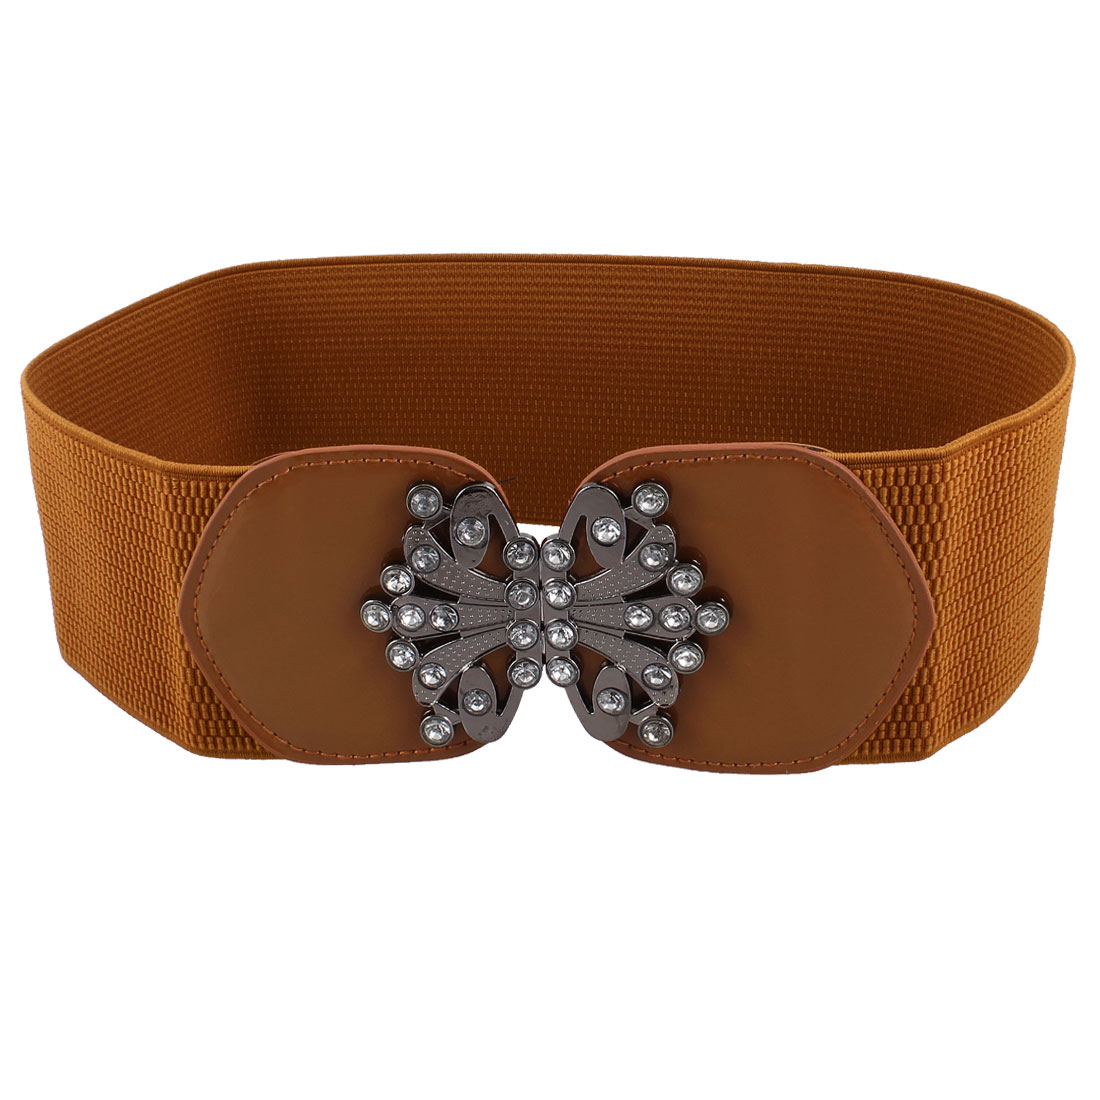 Lady Interlocking Metal Buckle Crystal Butterfly Detail Stretchy Brown Waist Belt Waistband Corset Band